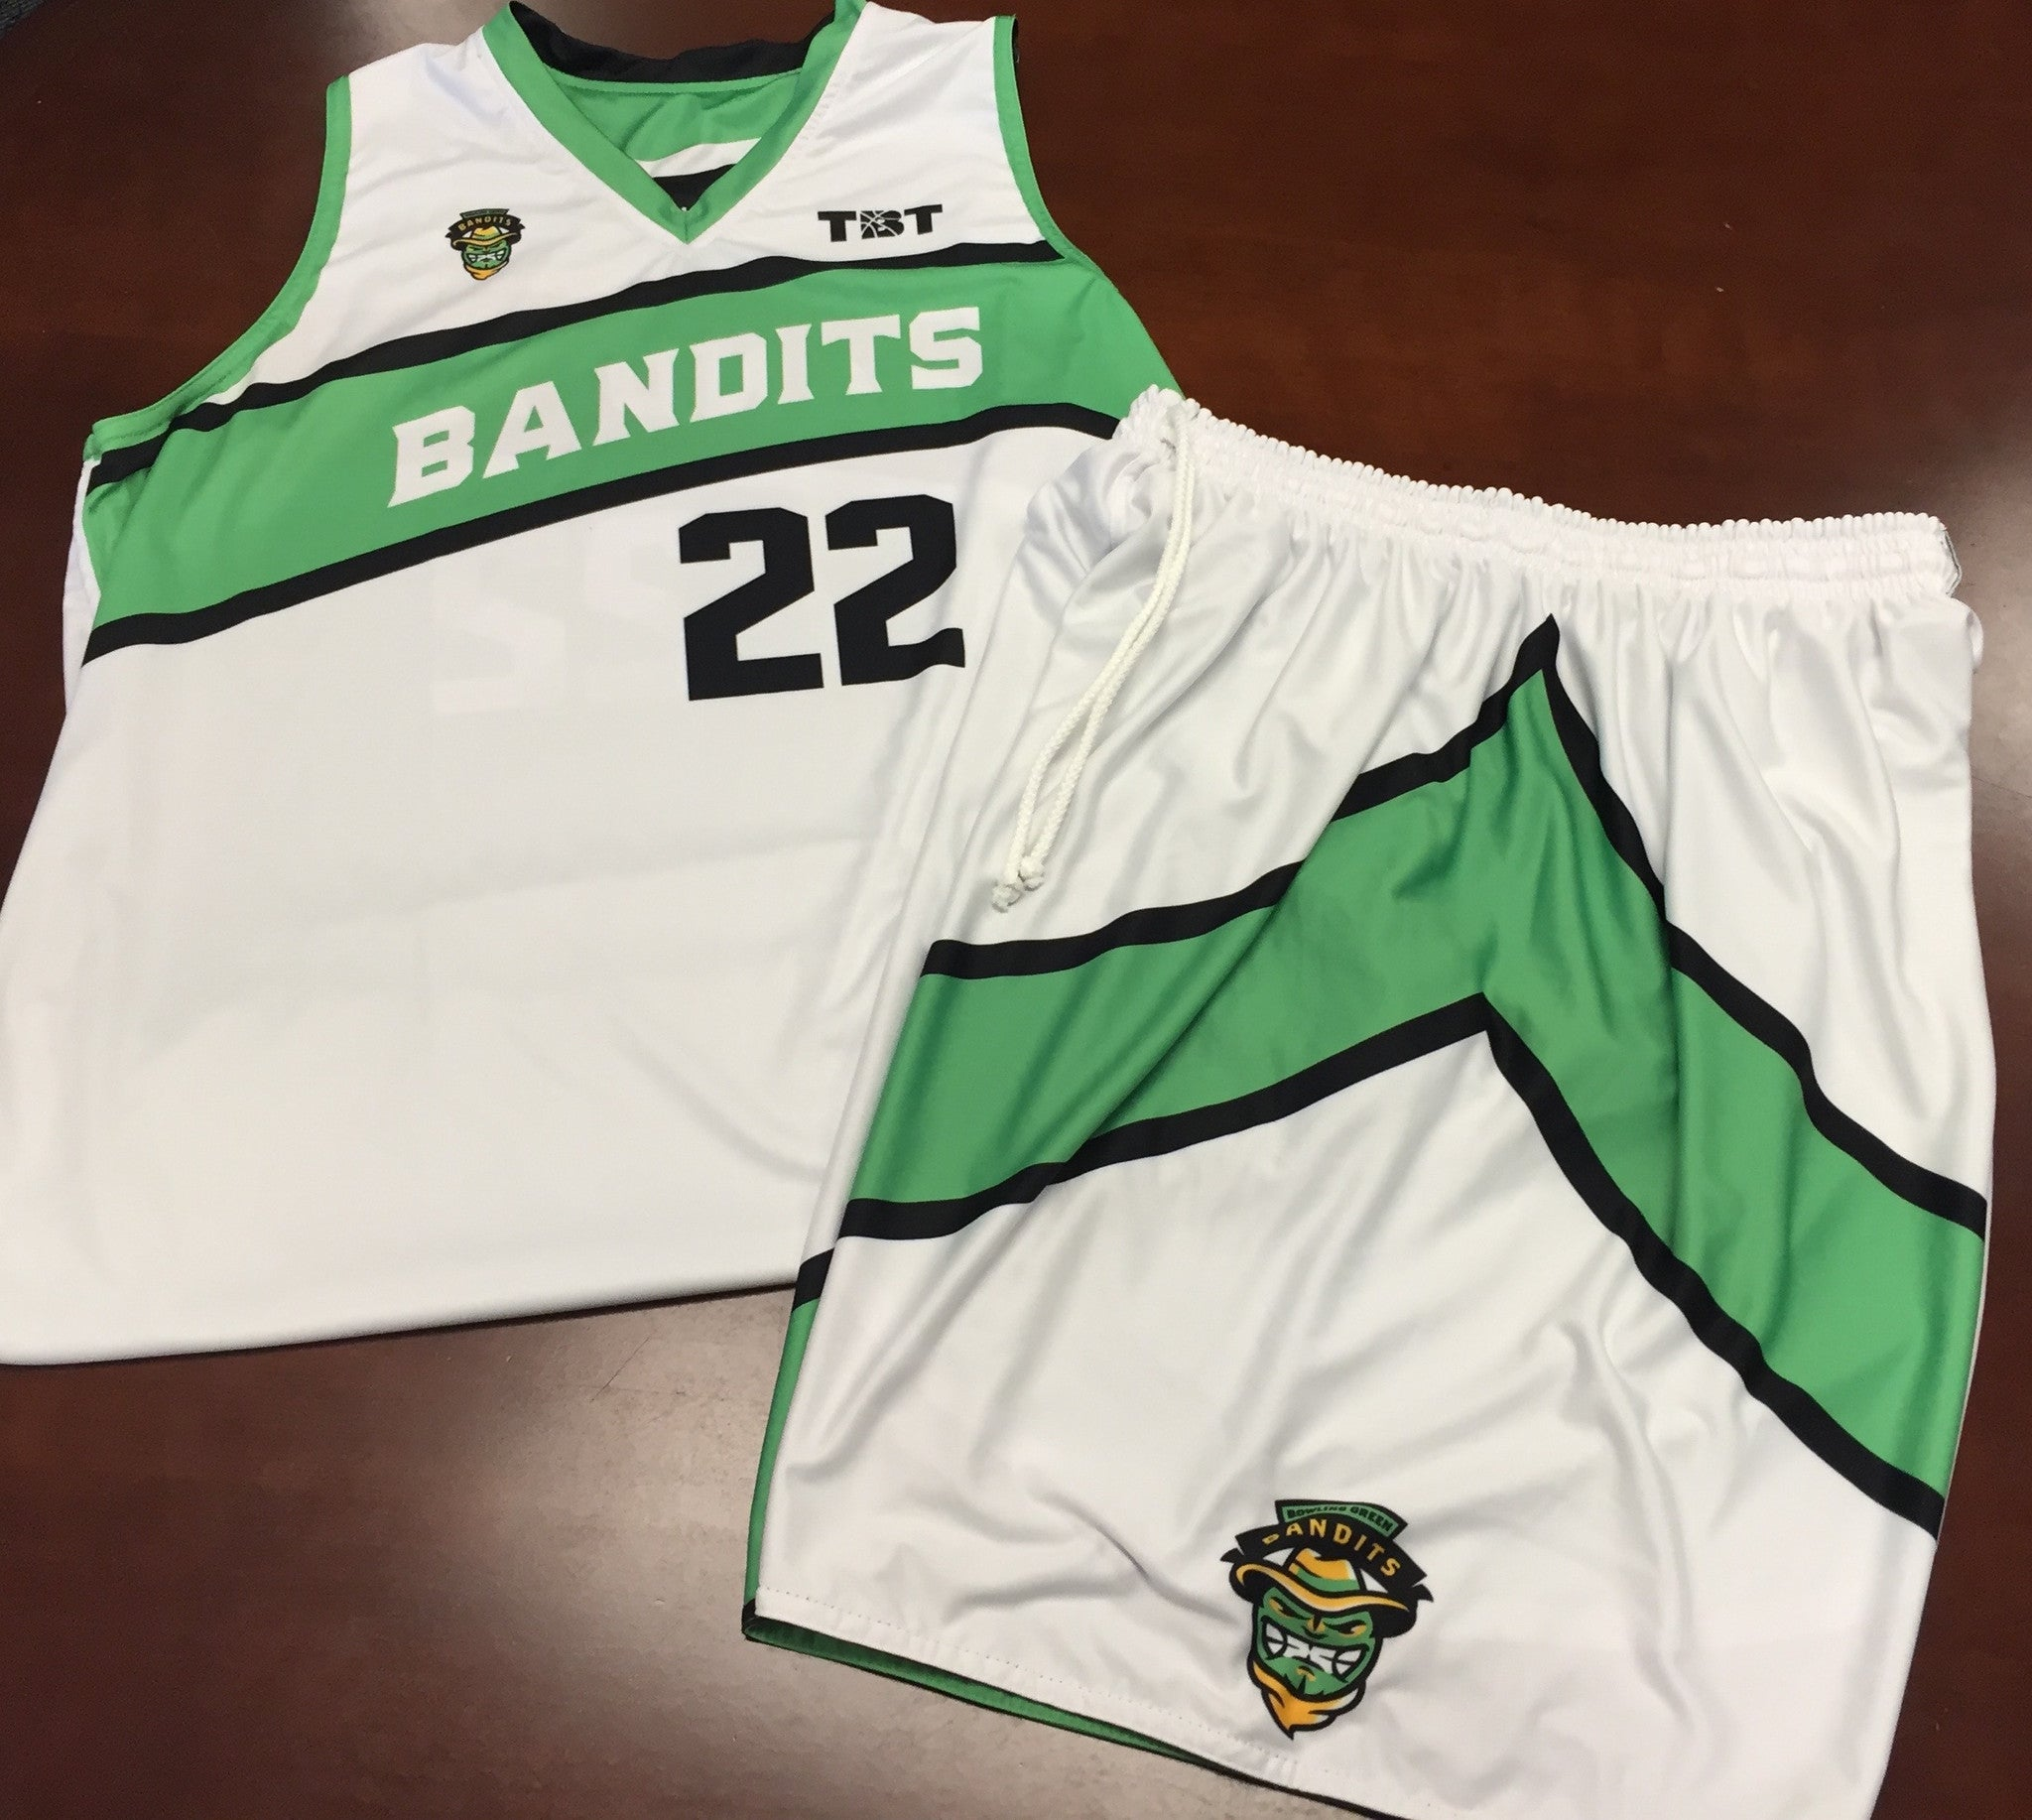 Bowling Green Bandits - 2015 Official Team Uniform (Jersey & Shorts sold separately)